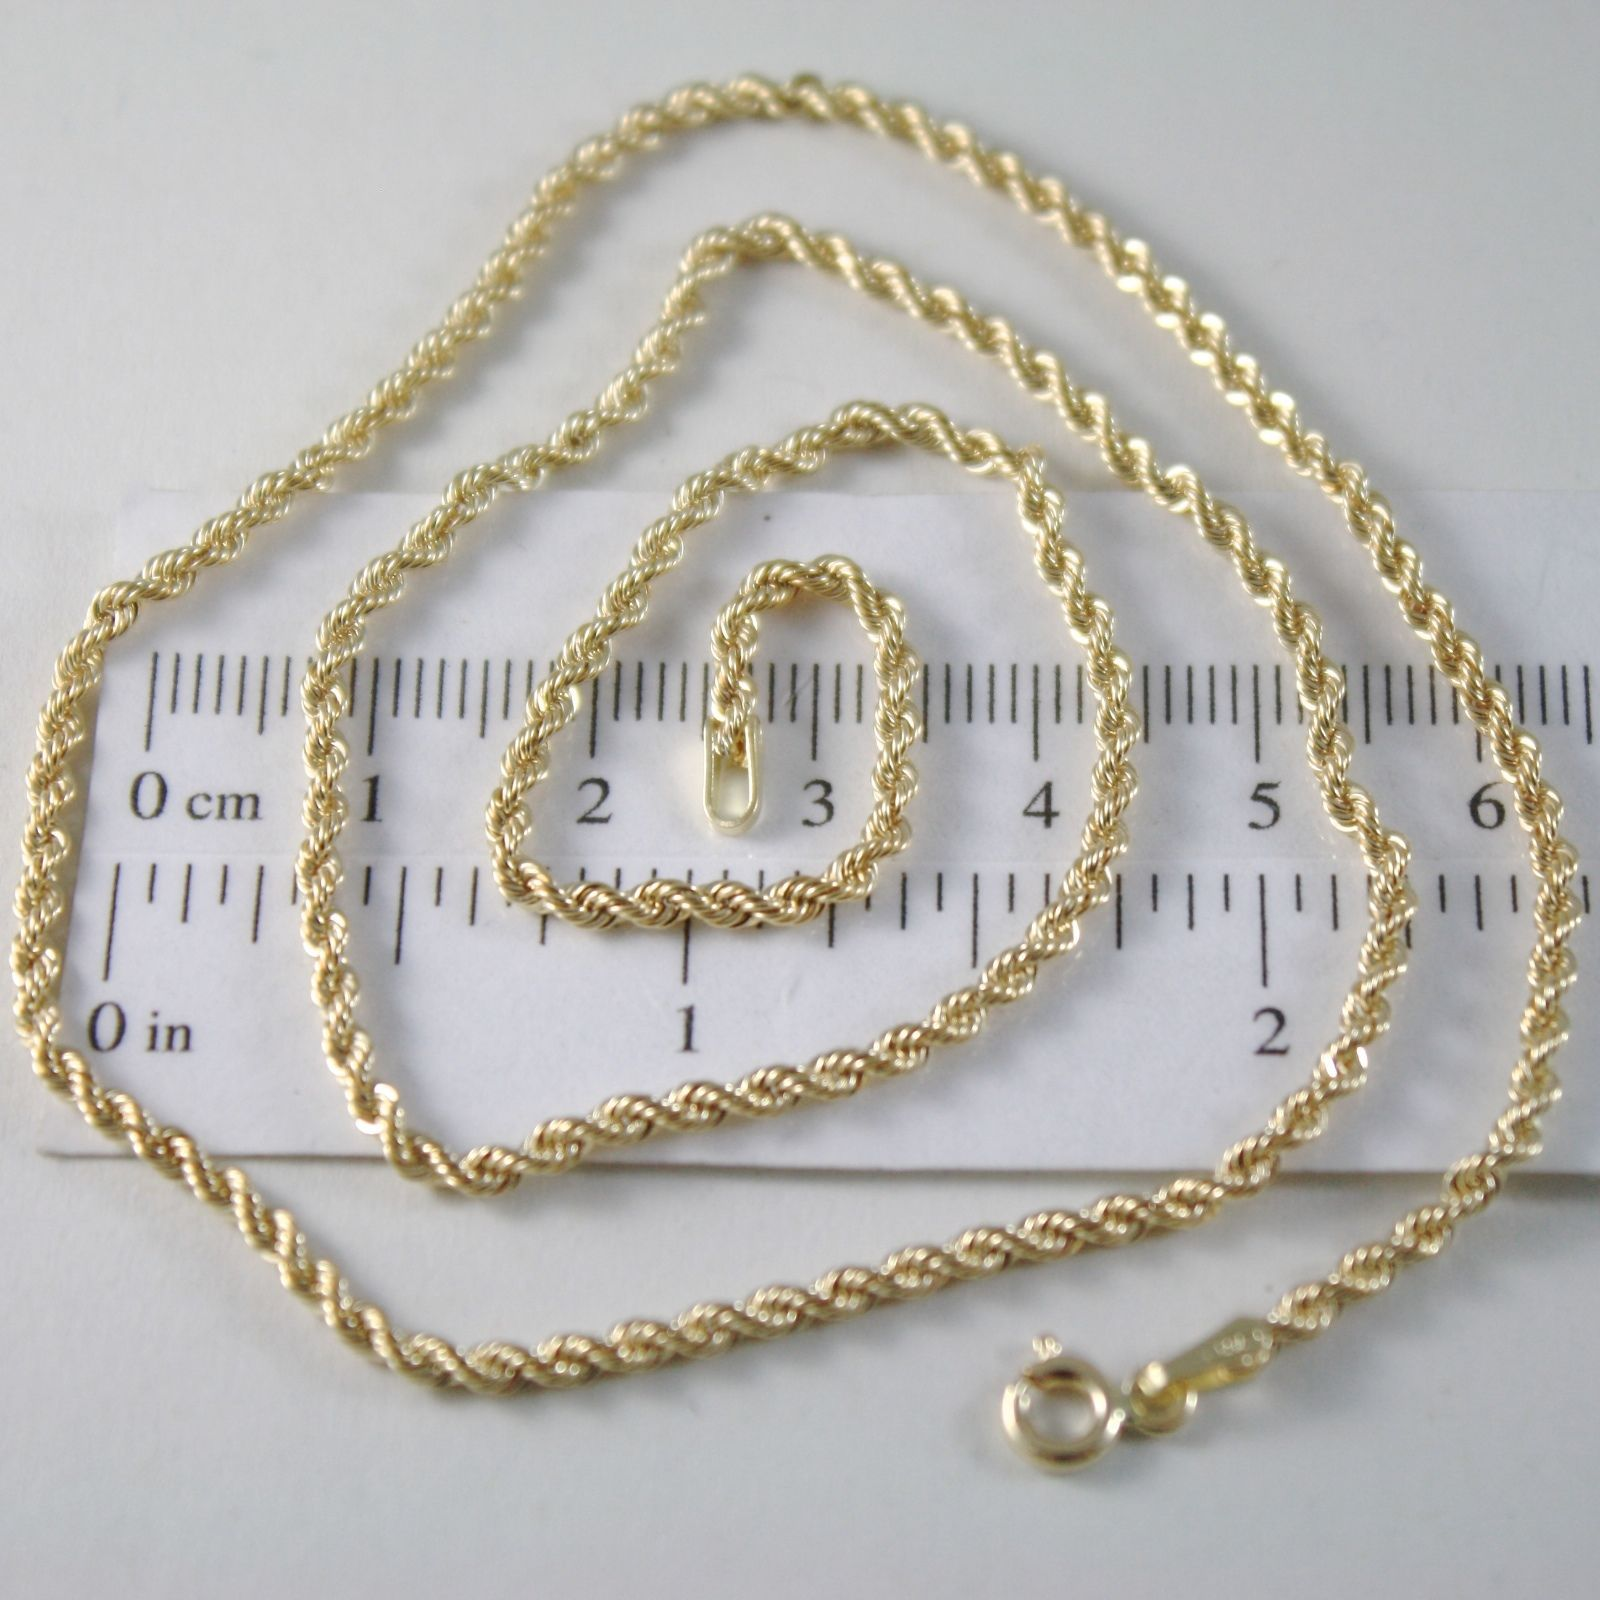 CHAIN WOVEN ROPE YELLOW GOLD 750 18K, 40 45 50 60 CM THICKNESS 2.5 MM